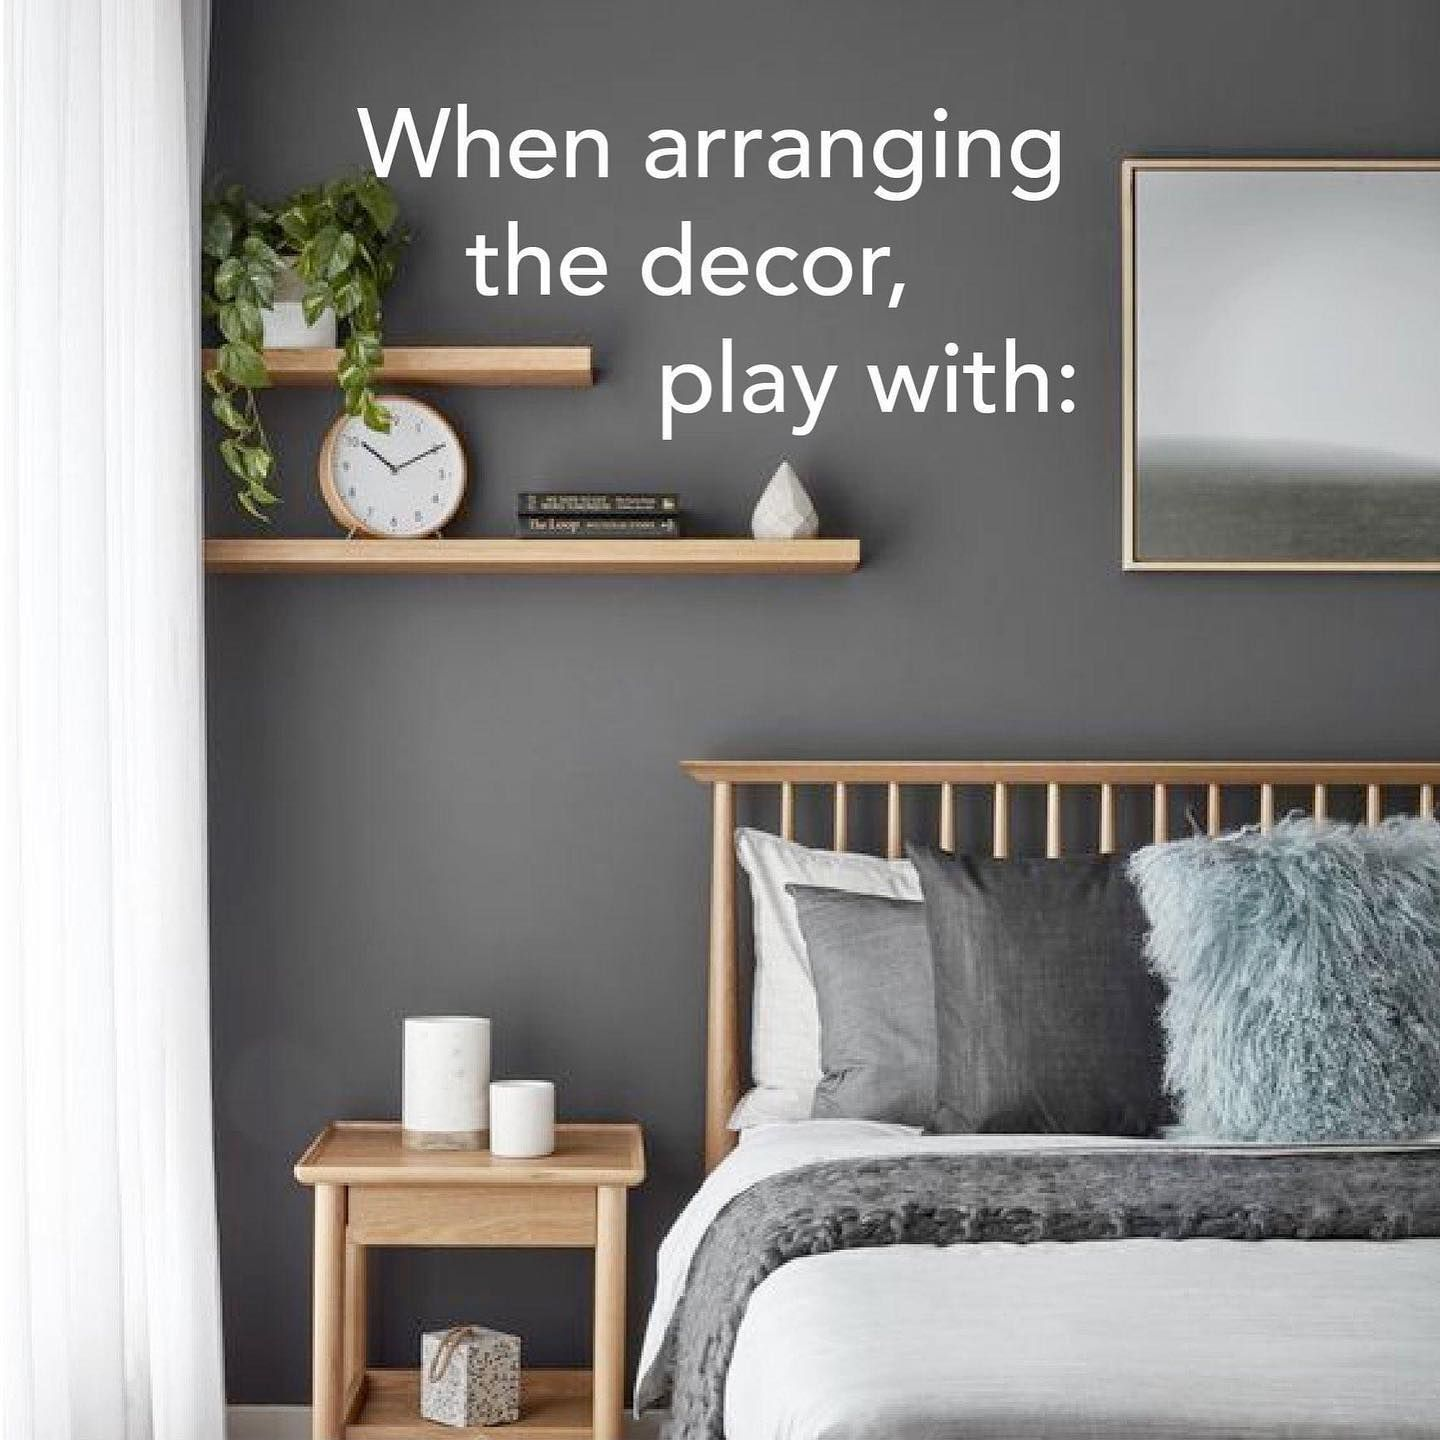 Feeling A Little Bored Of Your Surrounding Switch Things Up Renotalk Renotalksg Stayhome Stayhea In 2020 Bedroom Design Bedroom Wall Colors Small Bedroom Decor